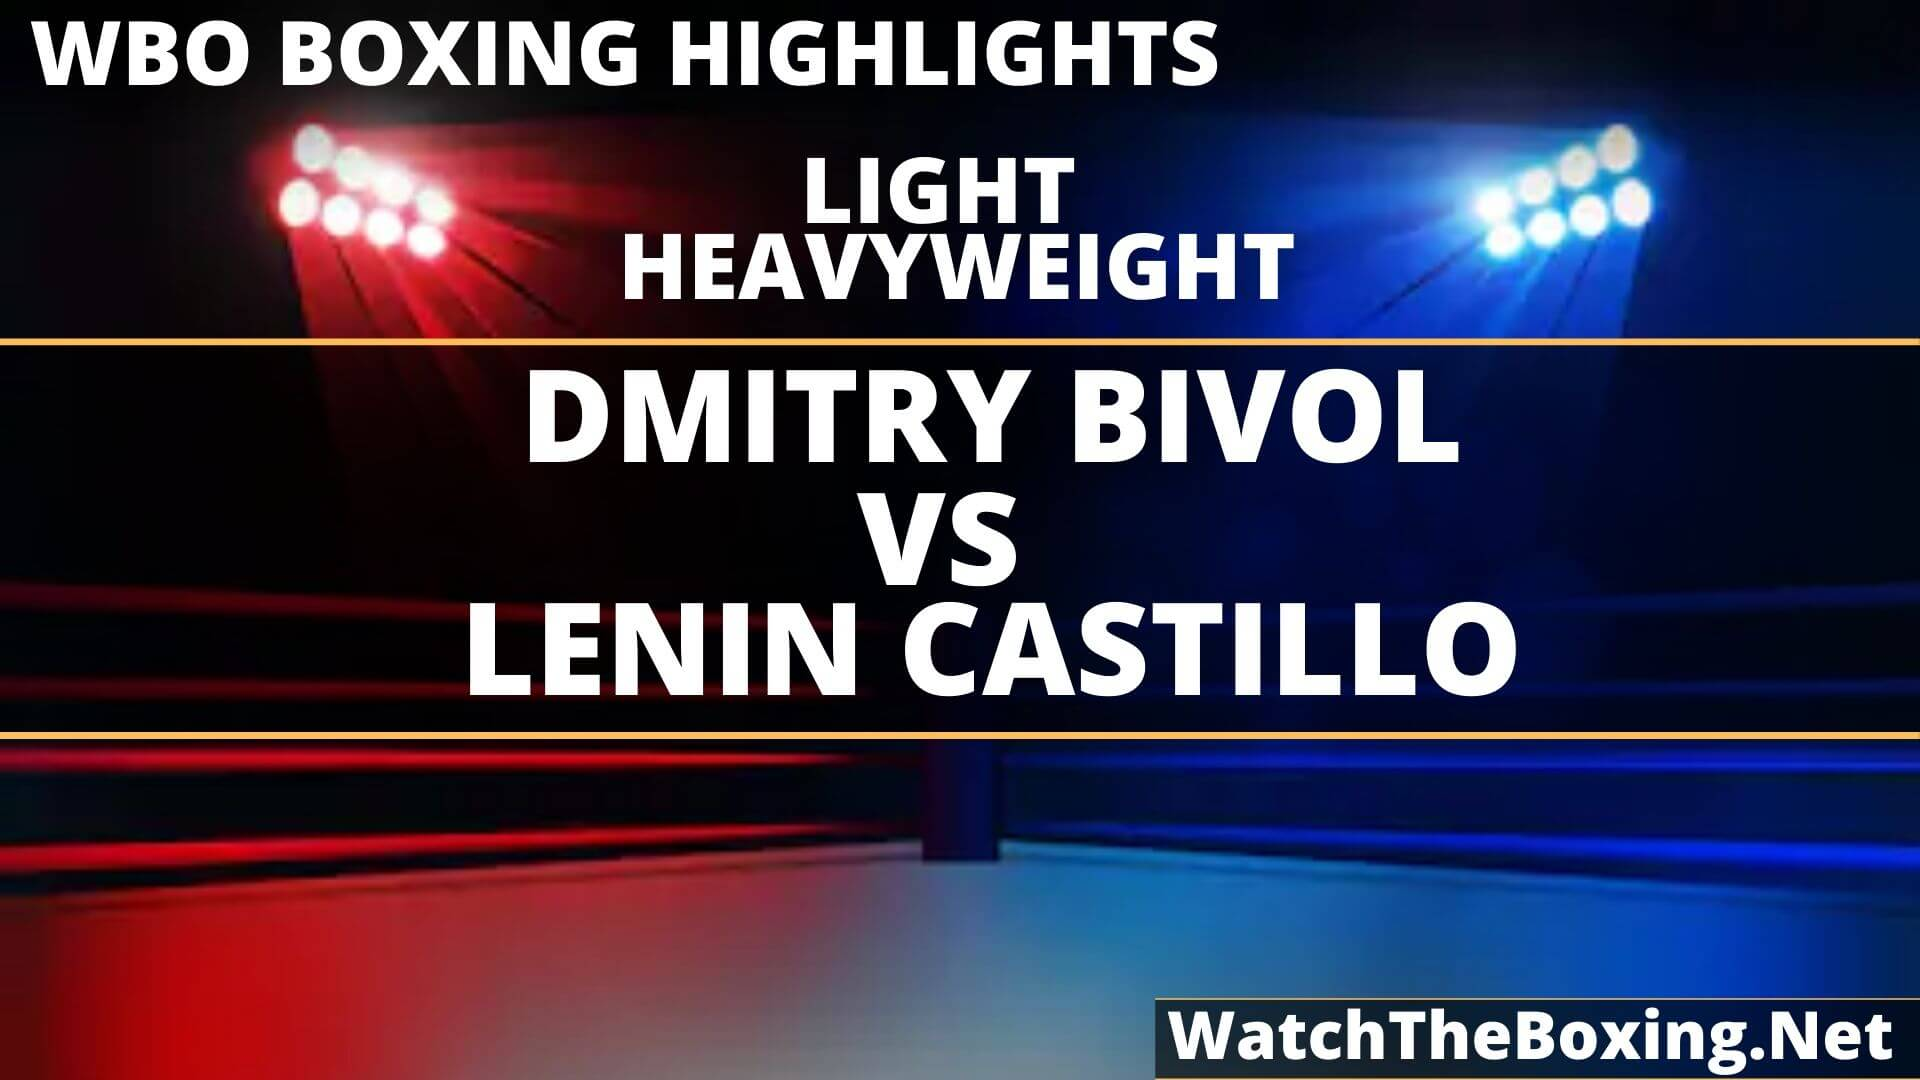 Dmitry Bivol Vs Lenin Castillo Highlights 2019